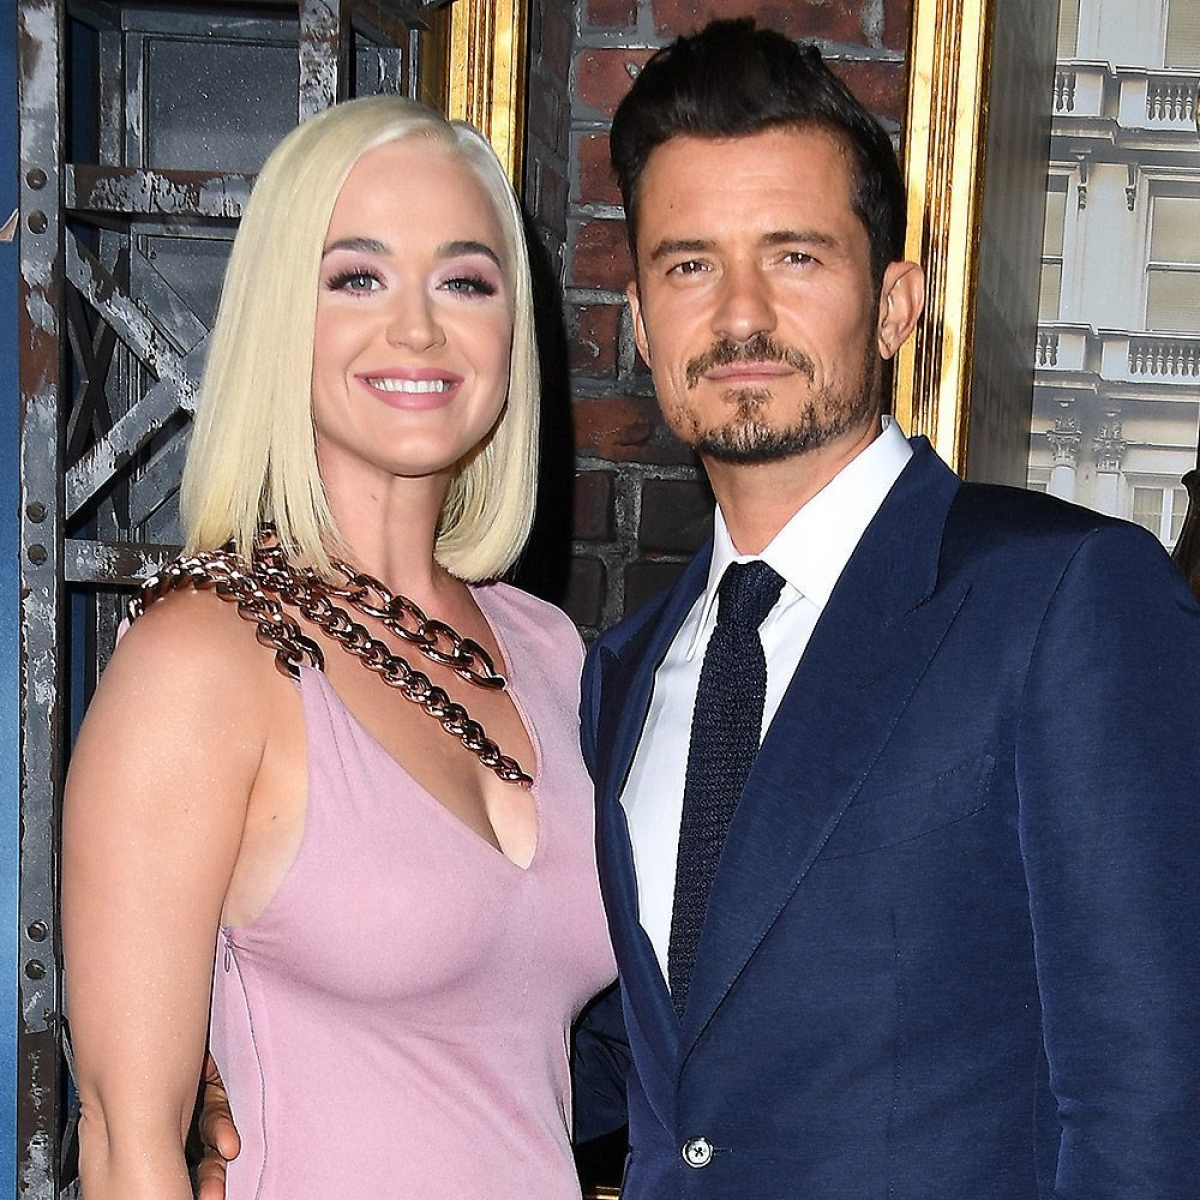 Katy Perry considered taking her own life post brief split from Orlando Bloom